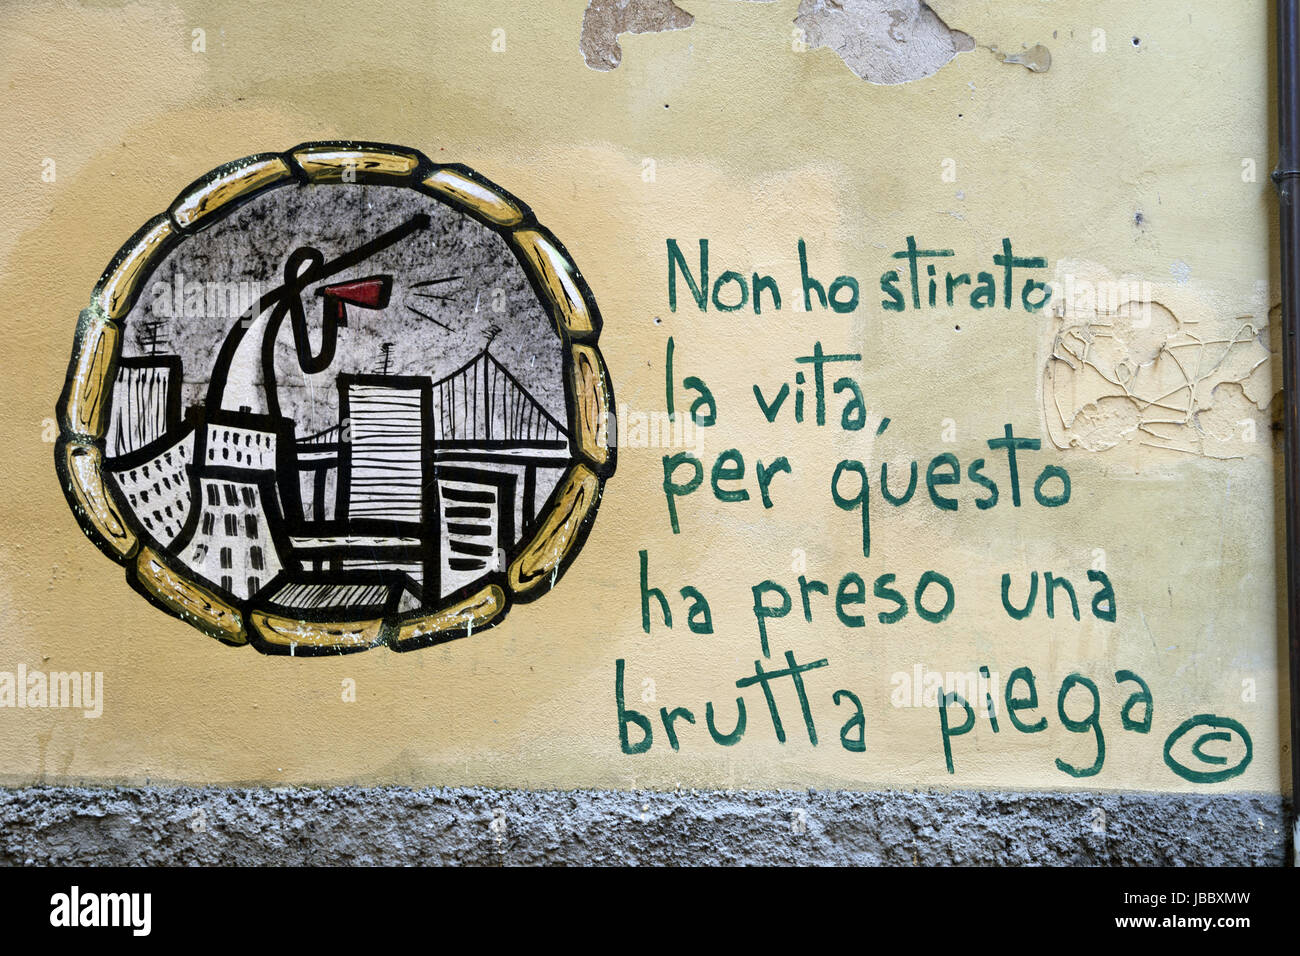 Graffiti on a wall in Pise, Italy Stock Photo